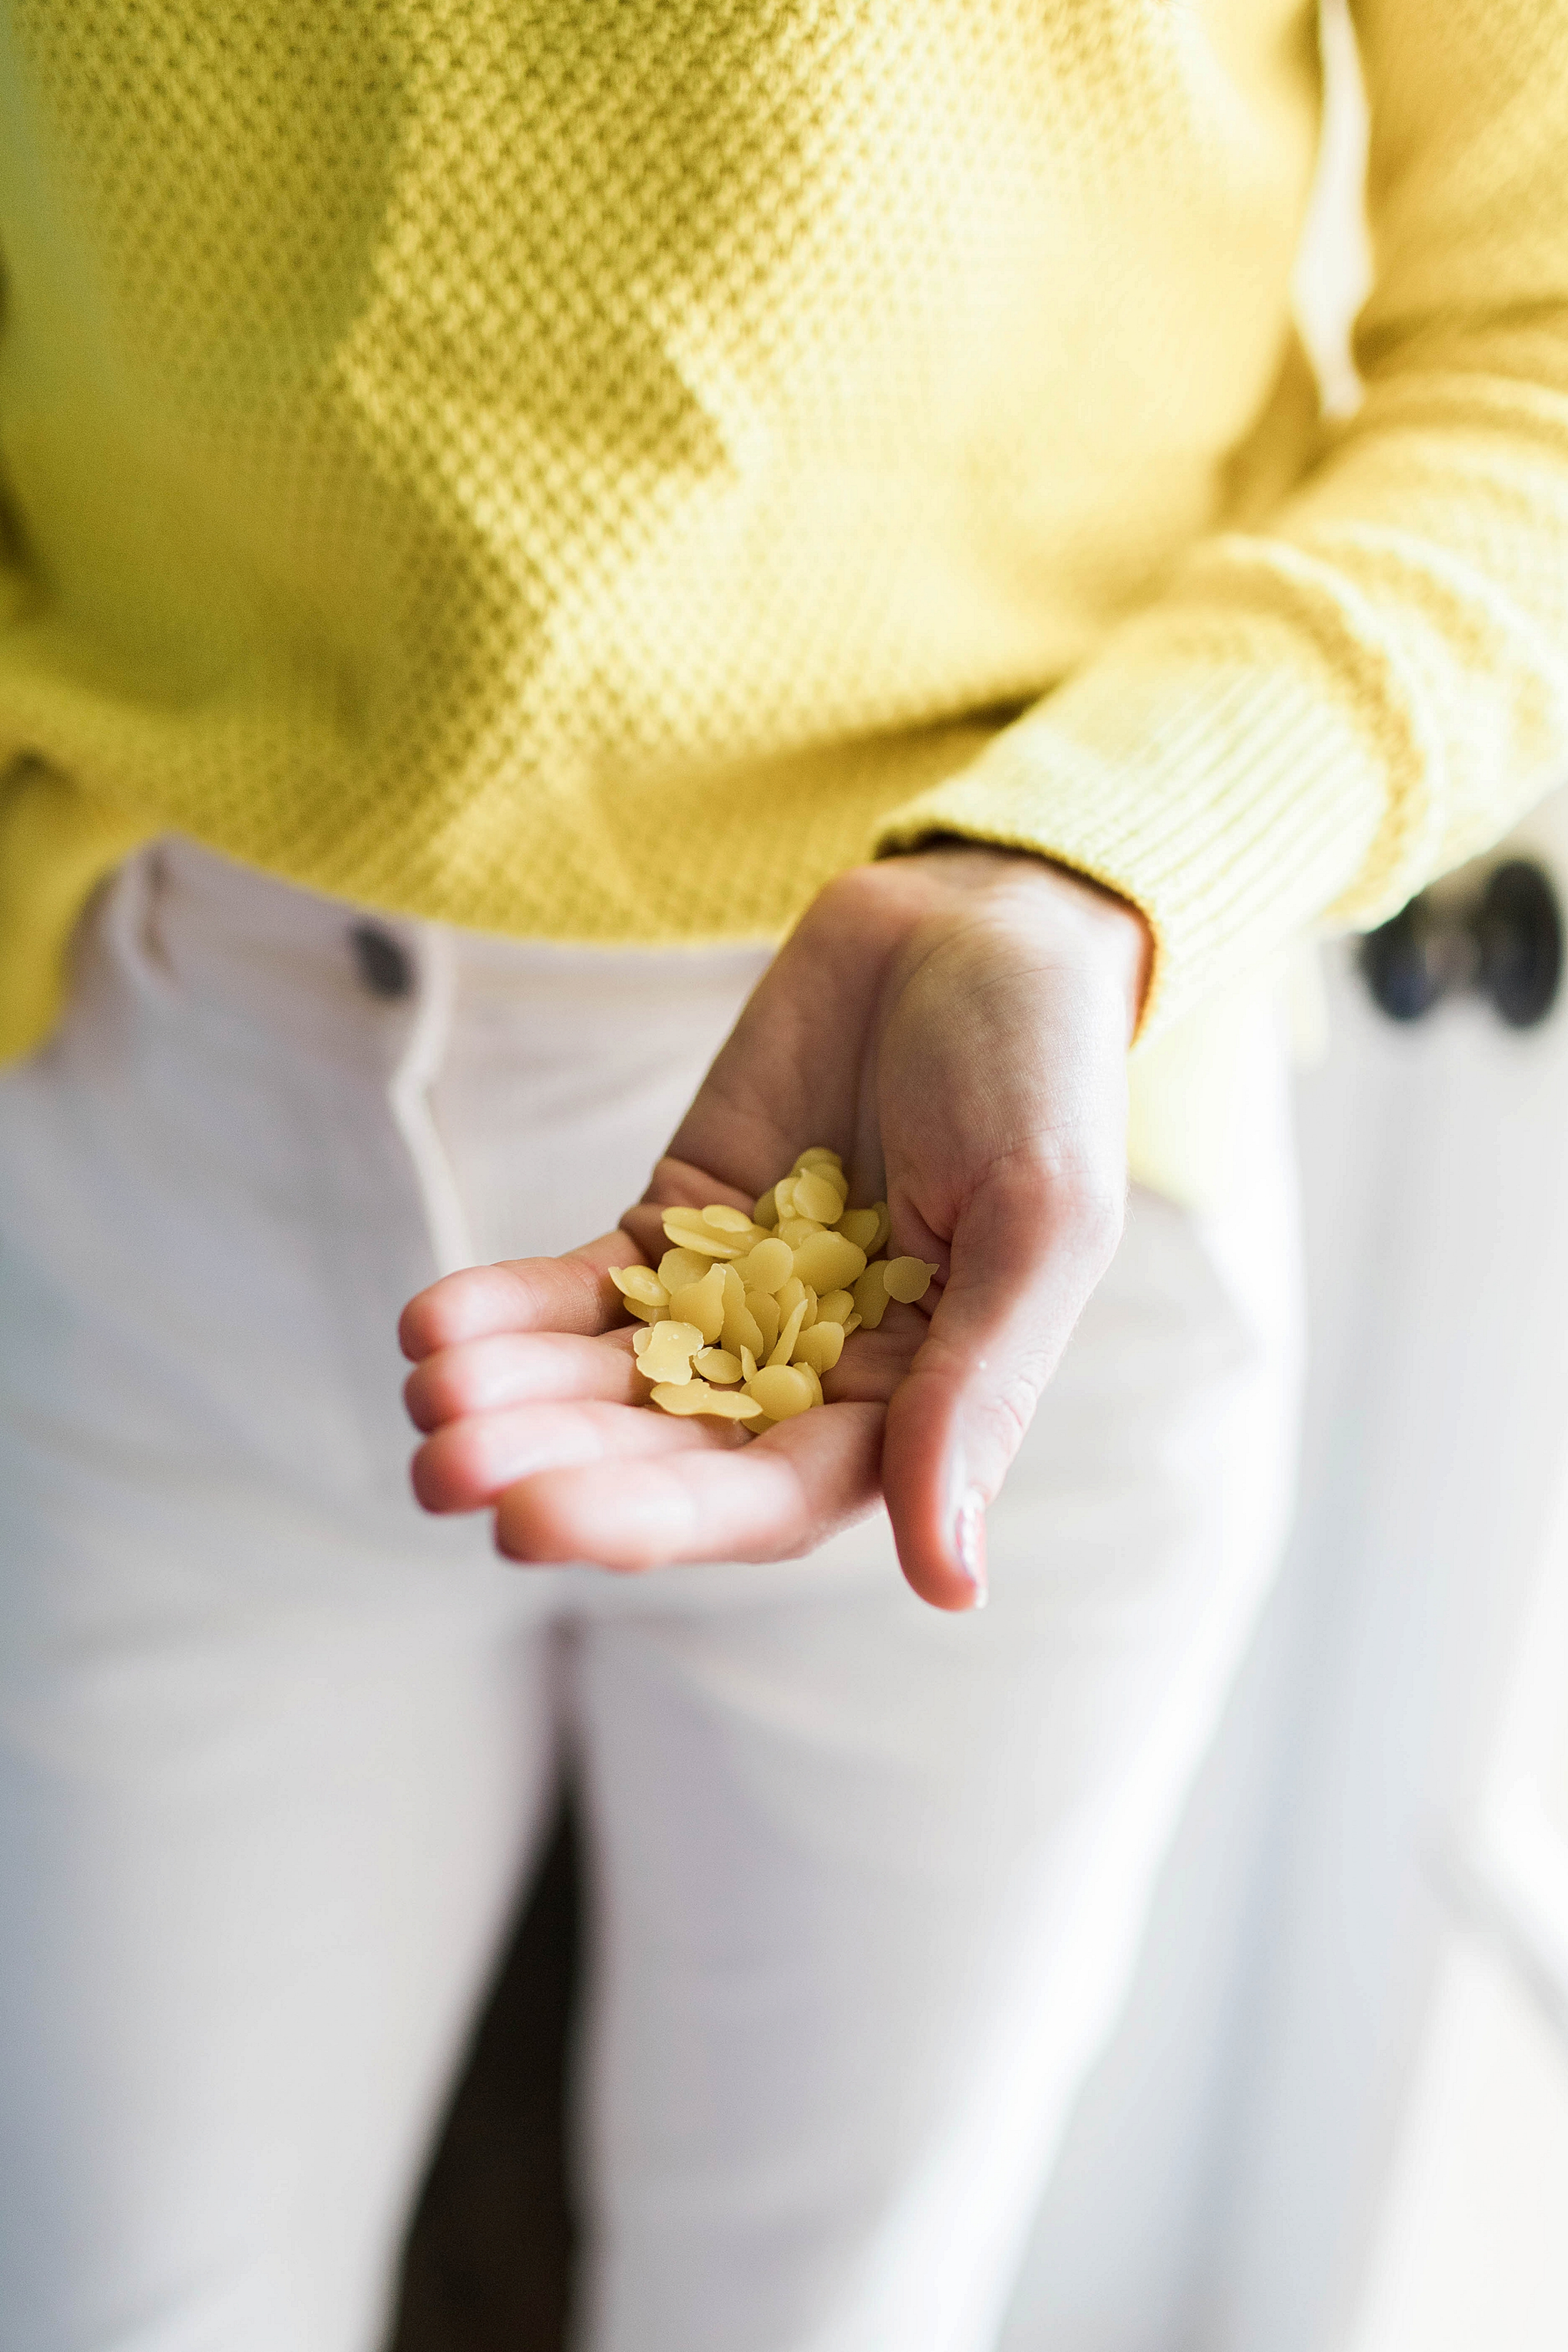 How to Make Reusable Beeswax Food Wraps / How to Make Your Own DIY Beeswax Wraps / Sustainable Living / Eco-Friendly Living / How to Style a Yellow Sweater / How to Wear White Pants - Sunshine Style, Florida Fashion and Lifestyle Blog